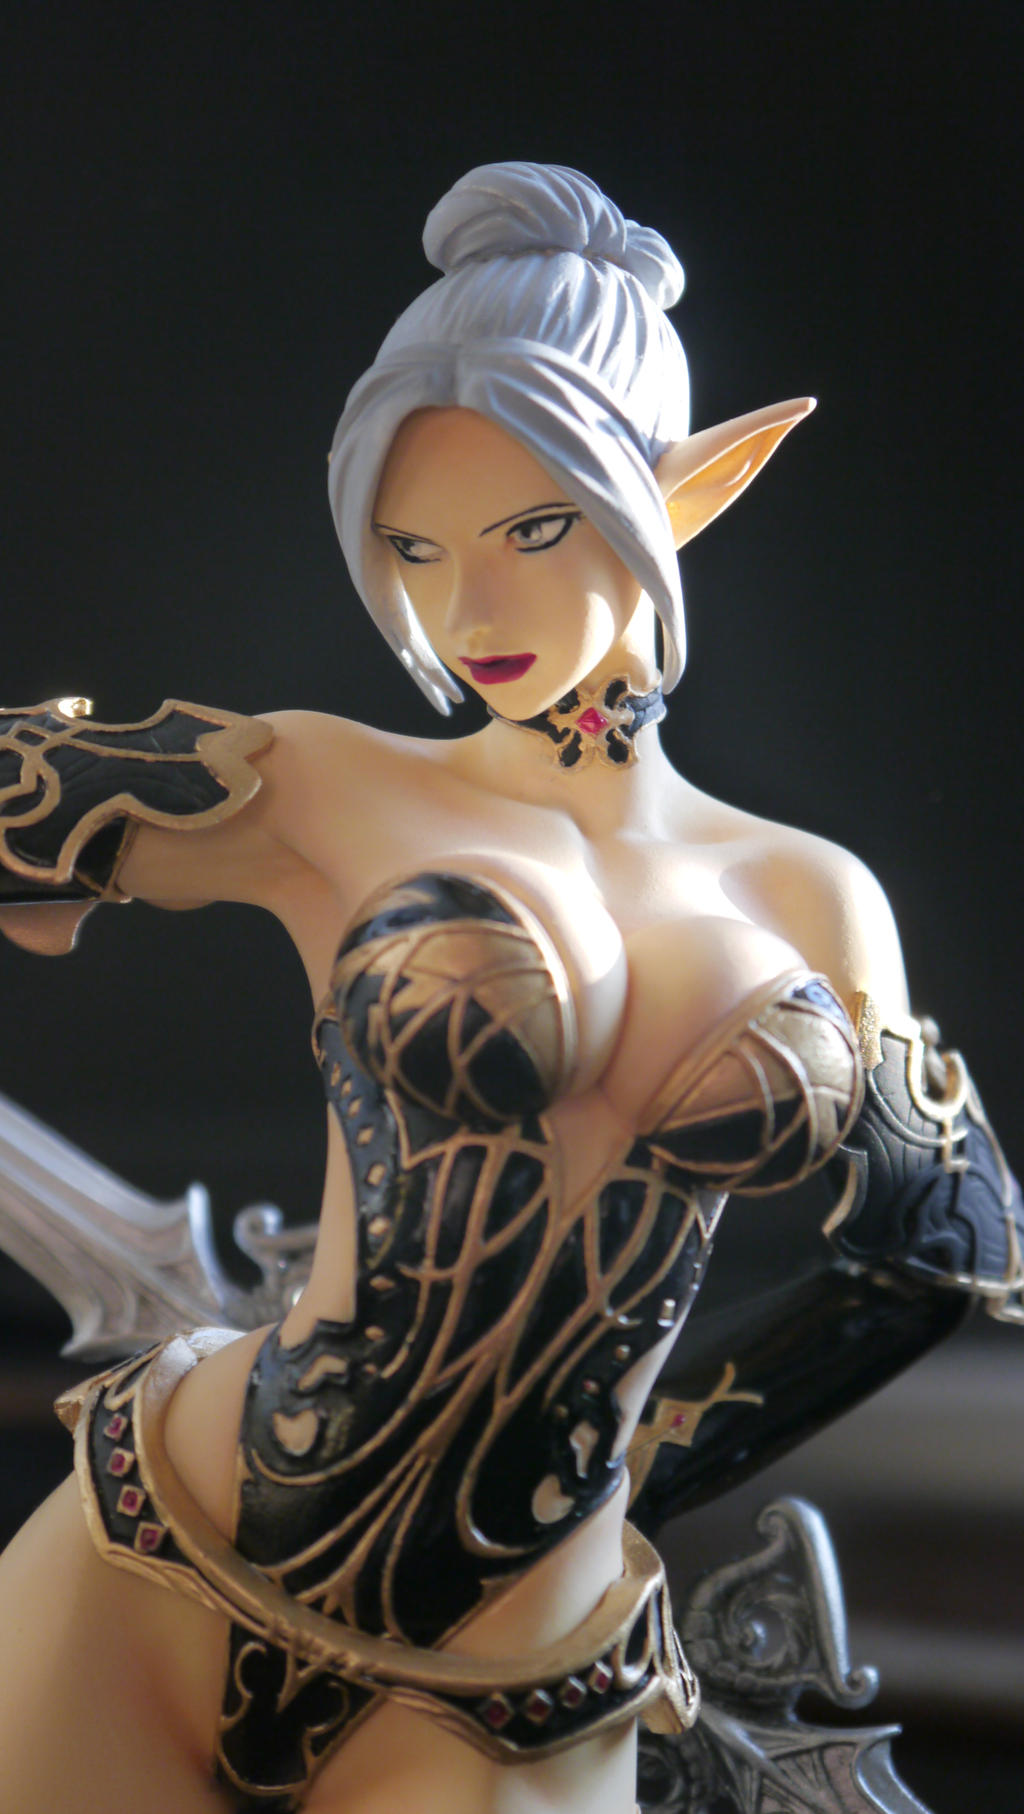 Dark elf l2 porn pics exposed movies